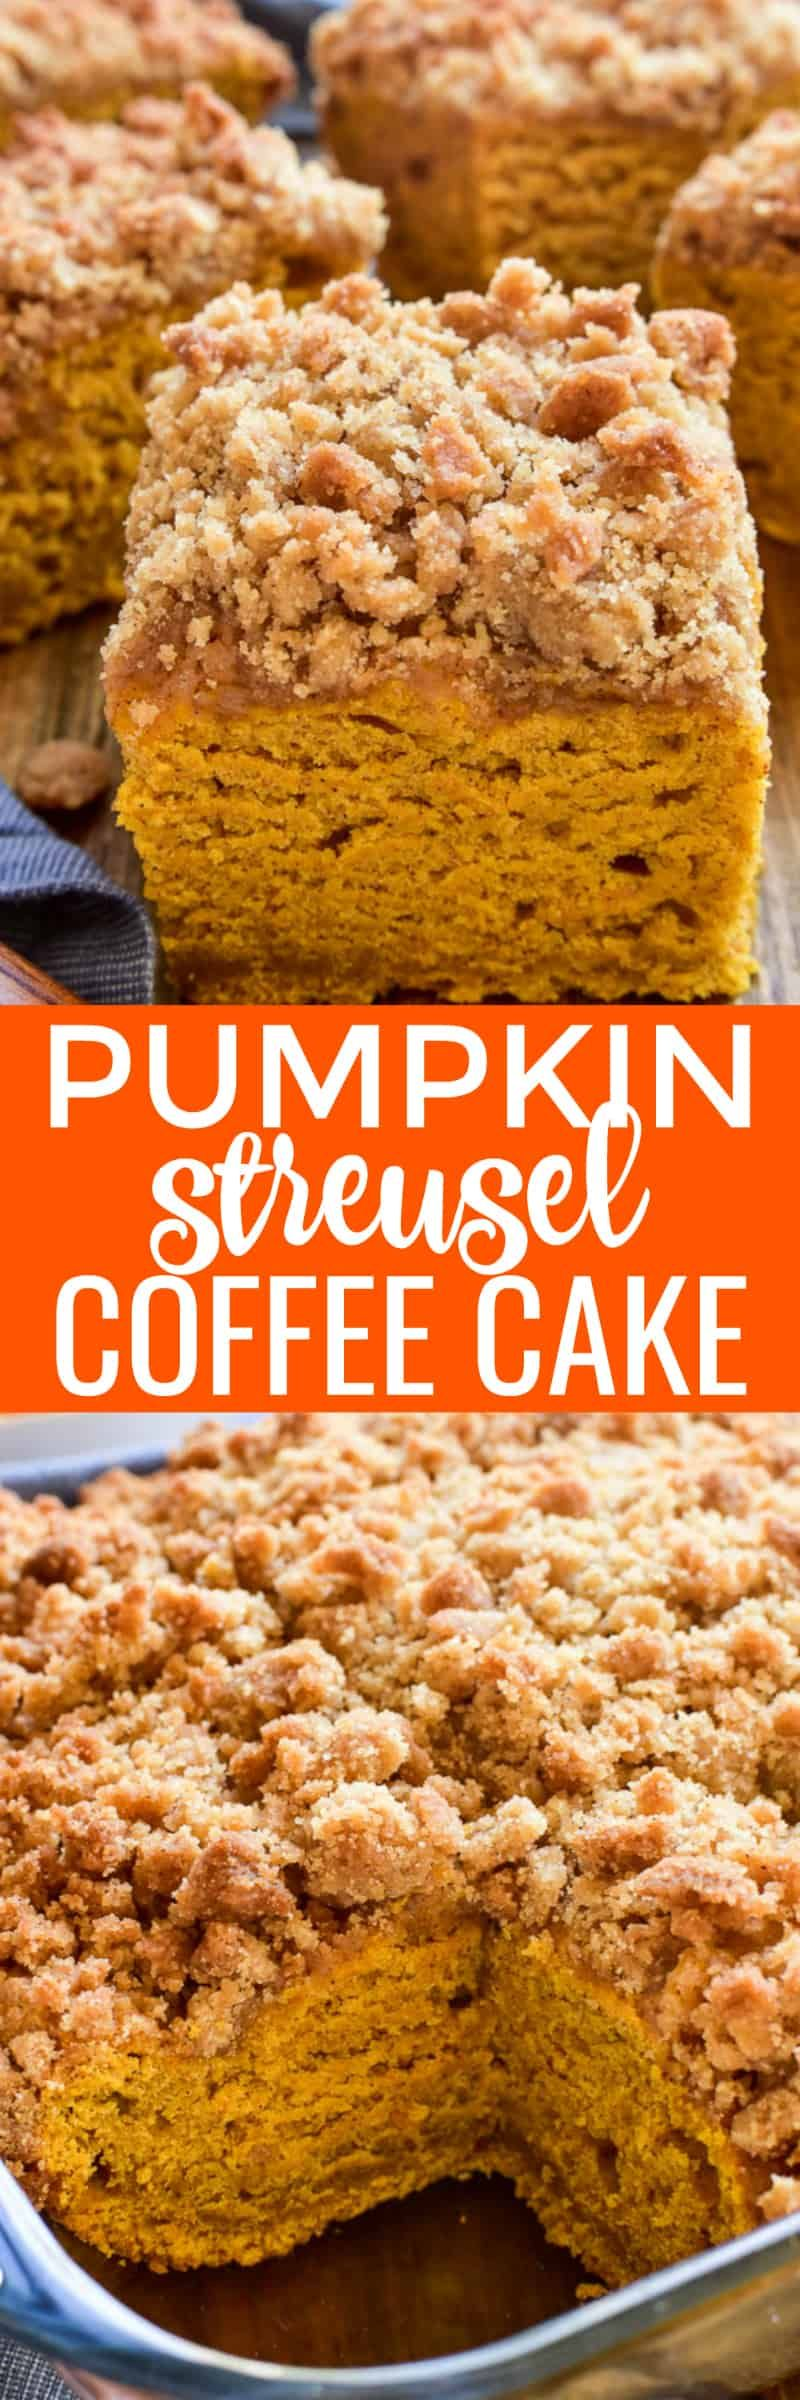 Pumpkin Coffee Cake with cinnamon streusel topping is the